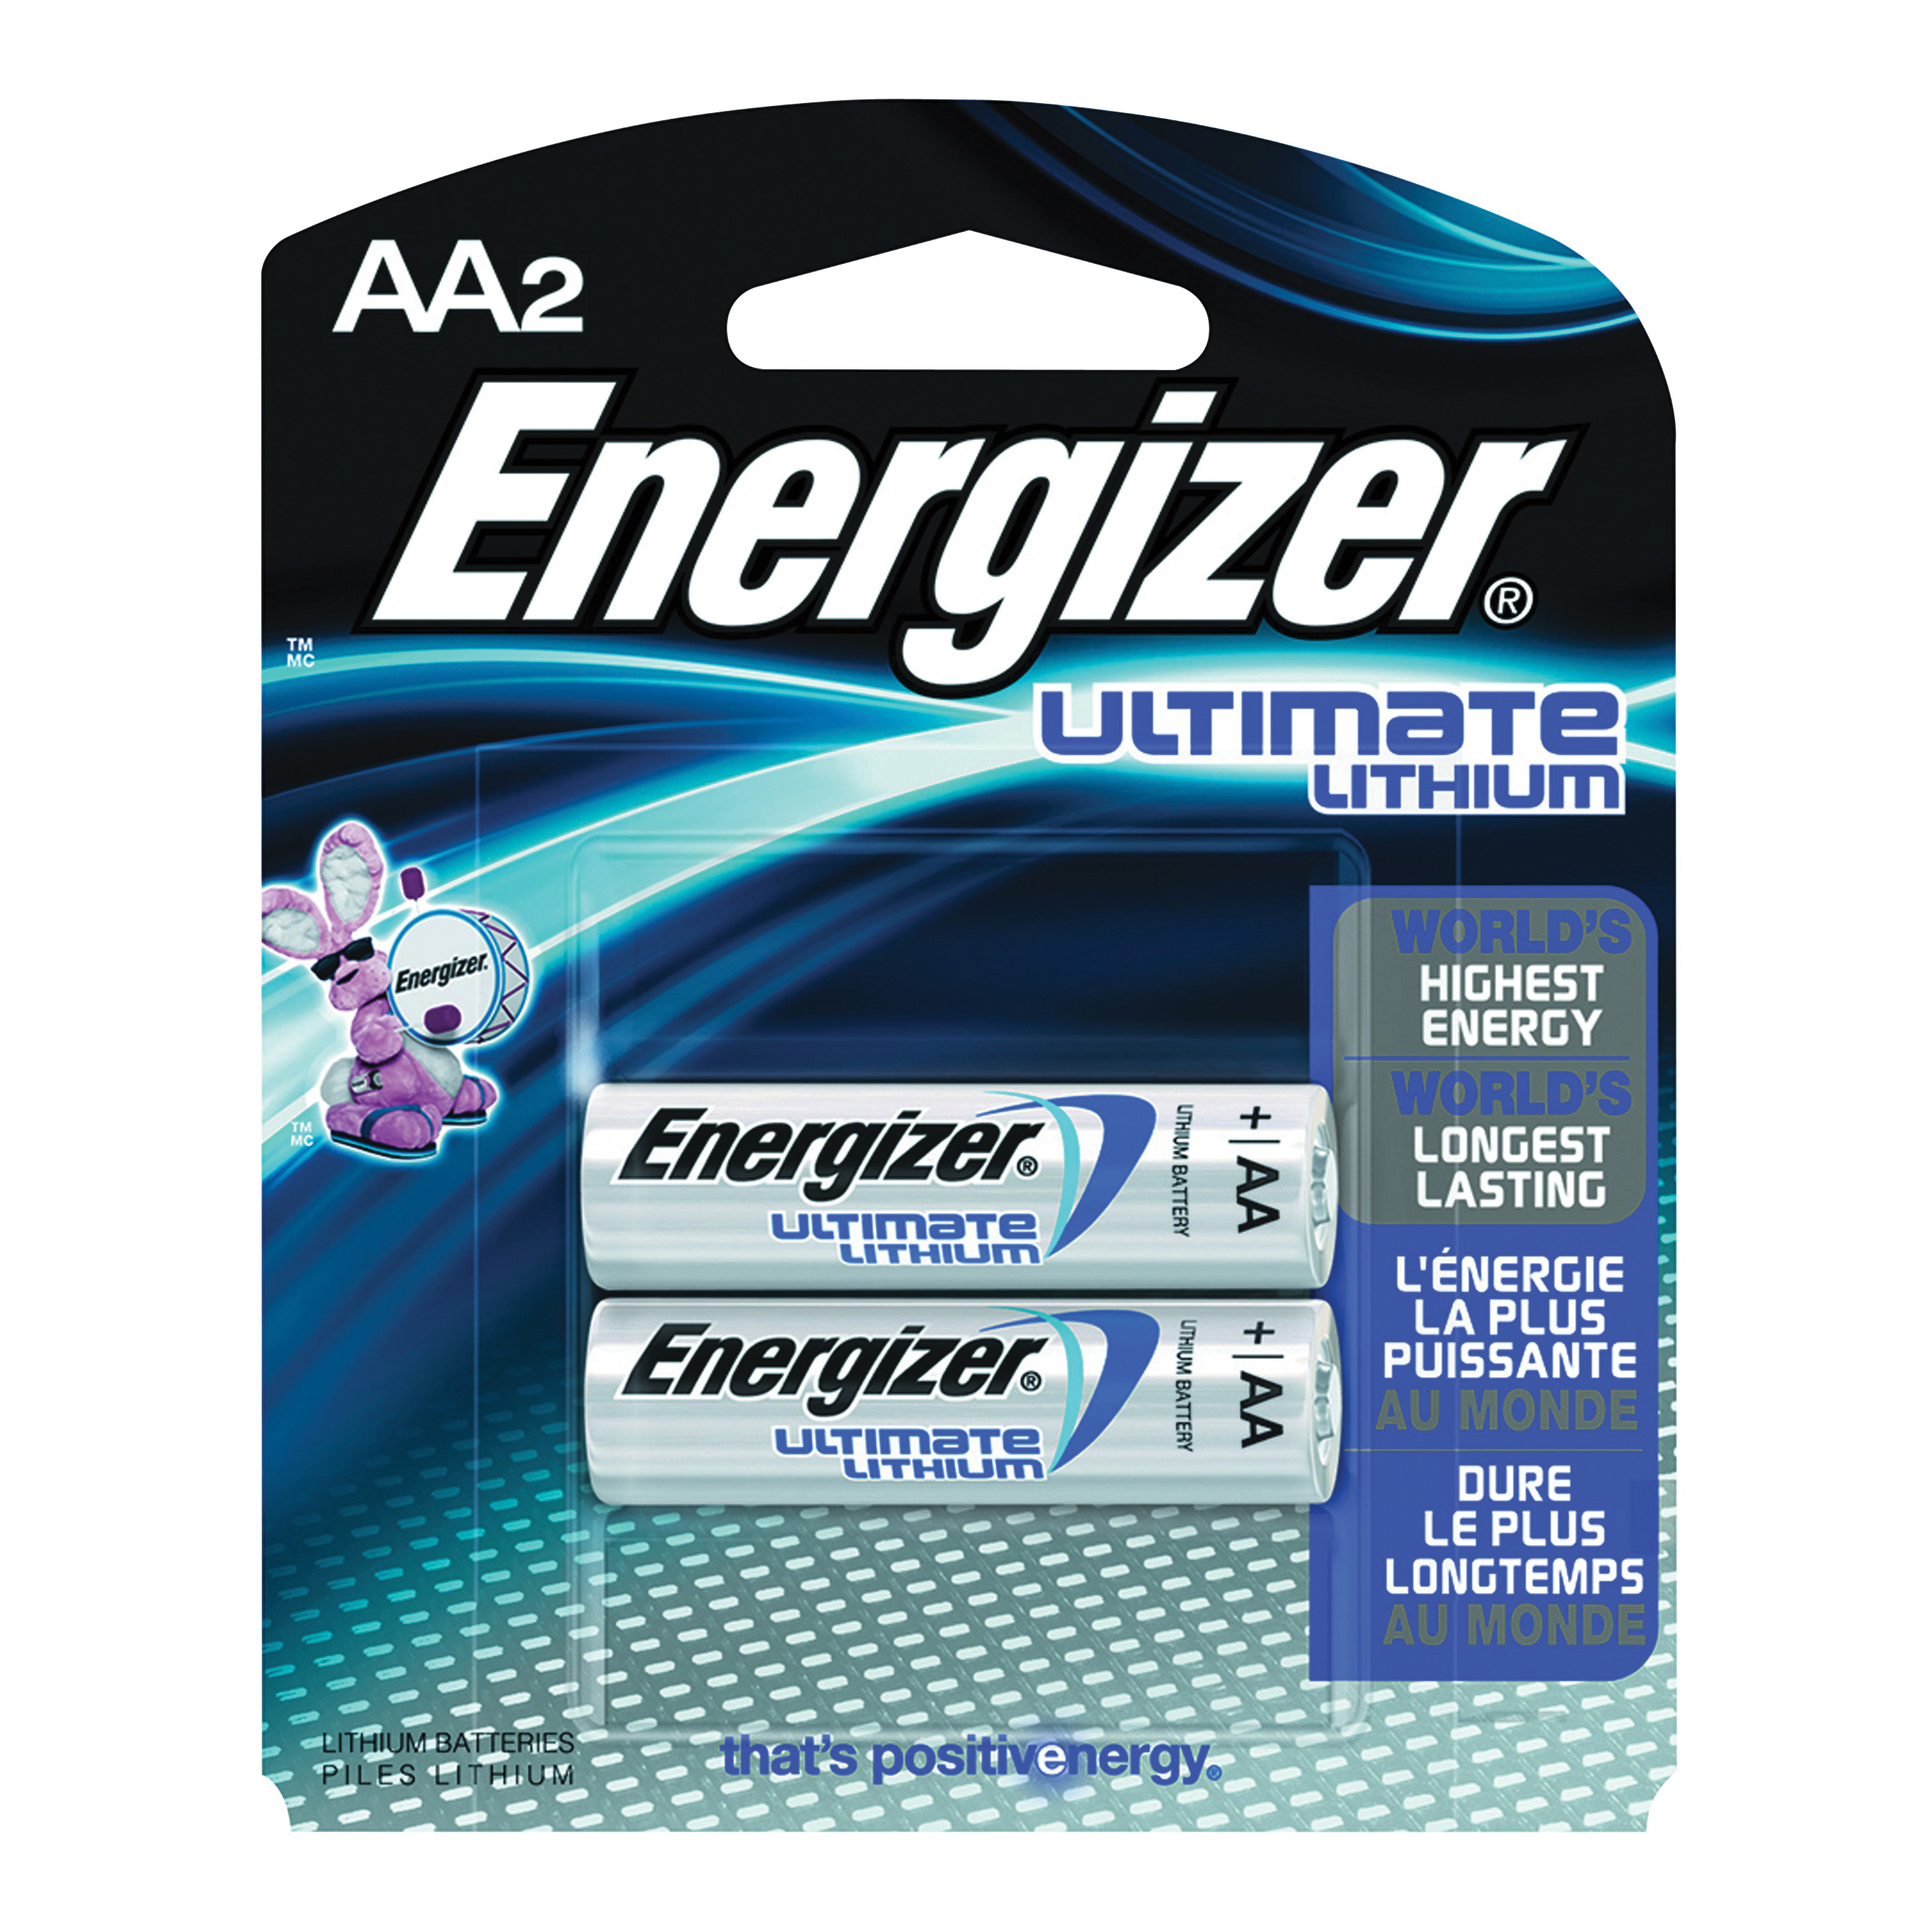 Picture of Energizer L91 Series L91BP-2 Lithium Battery, 1.5 V Battery, 3000 mAh, AA Battery, Lithium, Manganese Dioxide